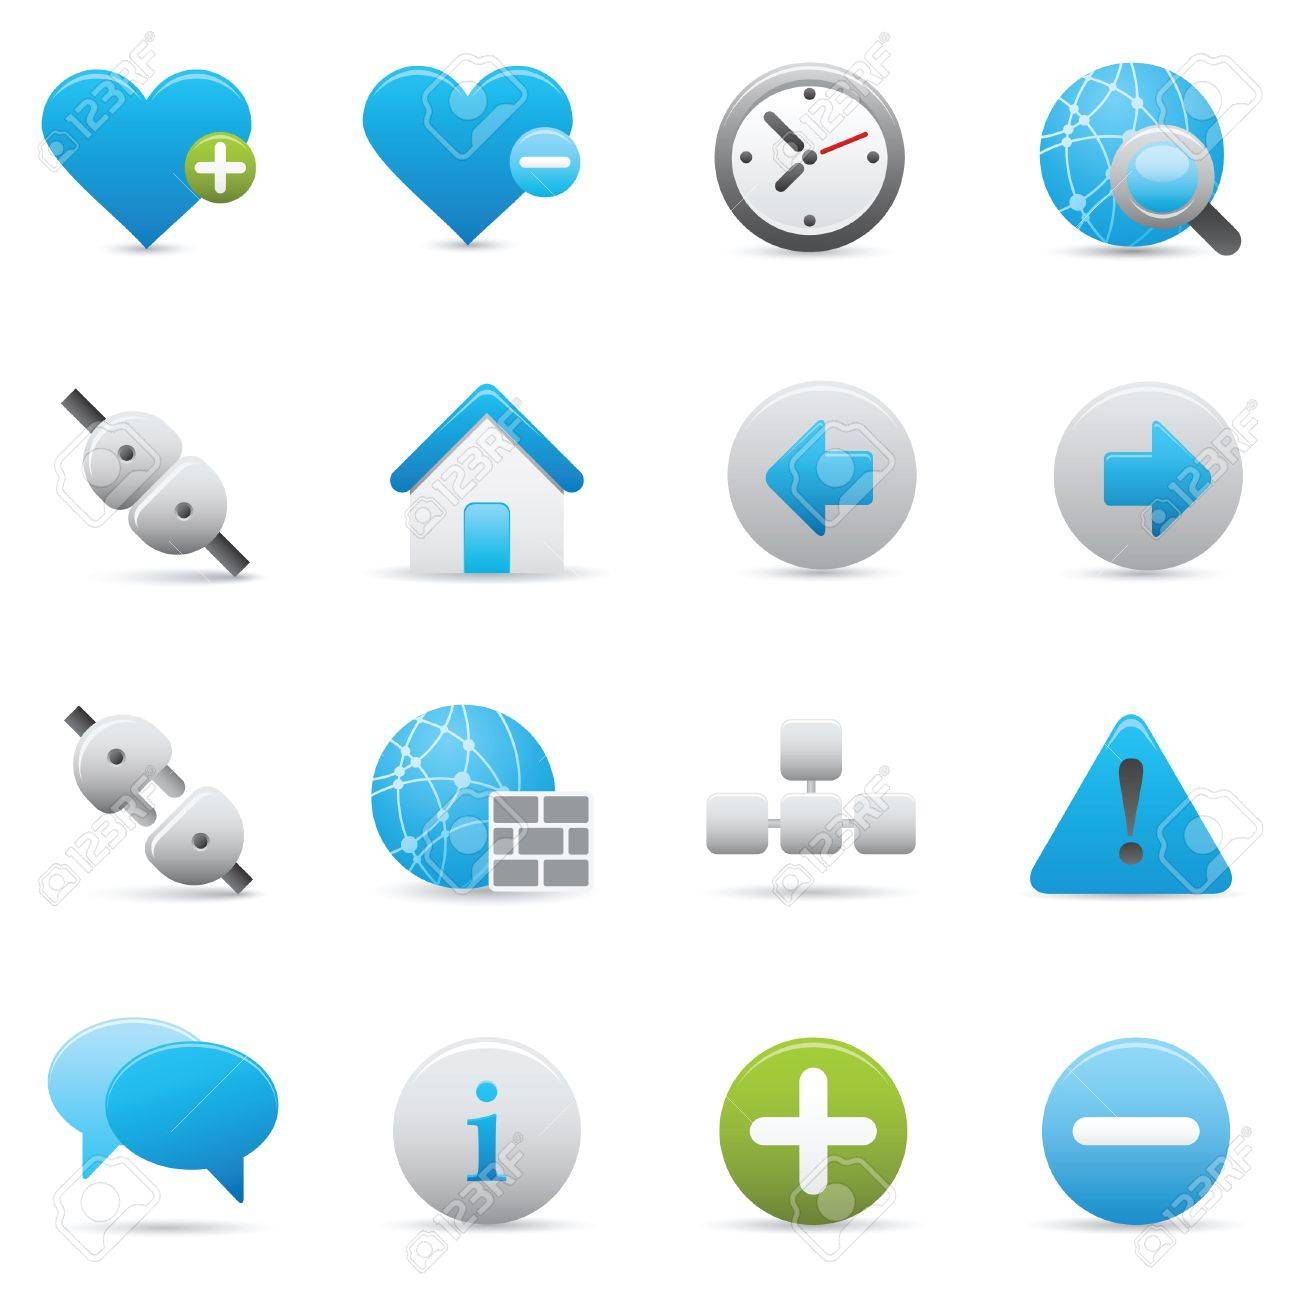 Professional icons for your website, application, or presentation. Stock Vector - 7310797